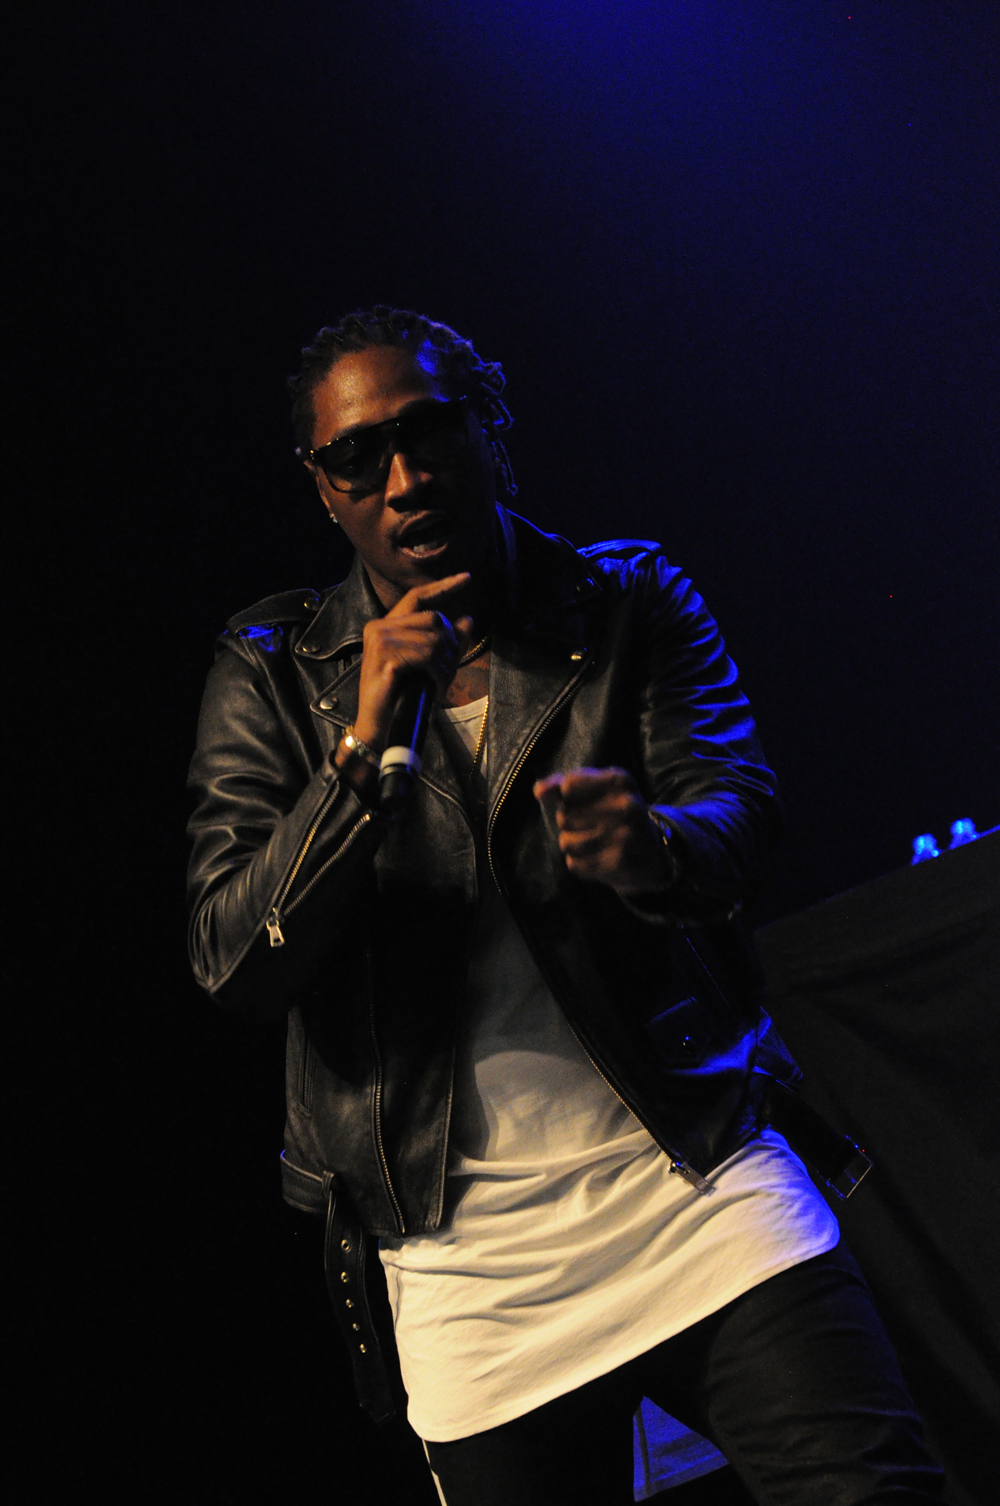 Future at the Sound Academy Toronto 2014 - 5